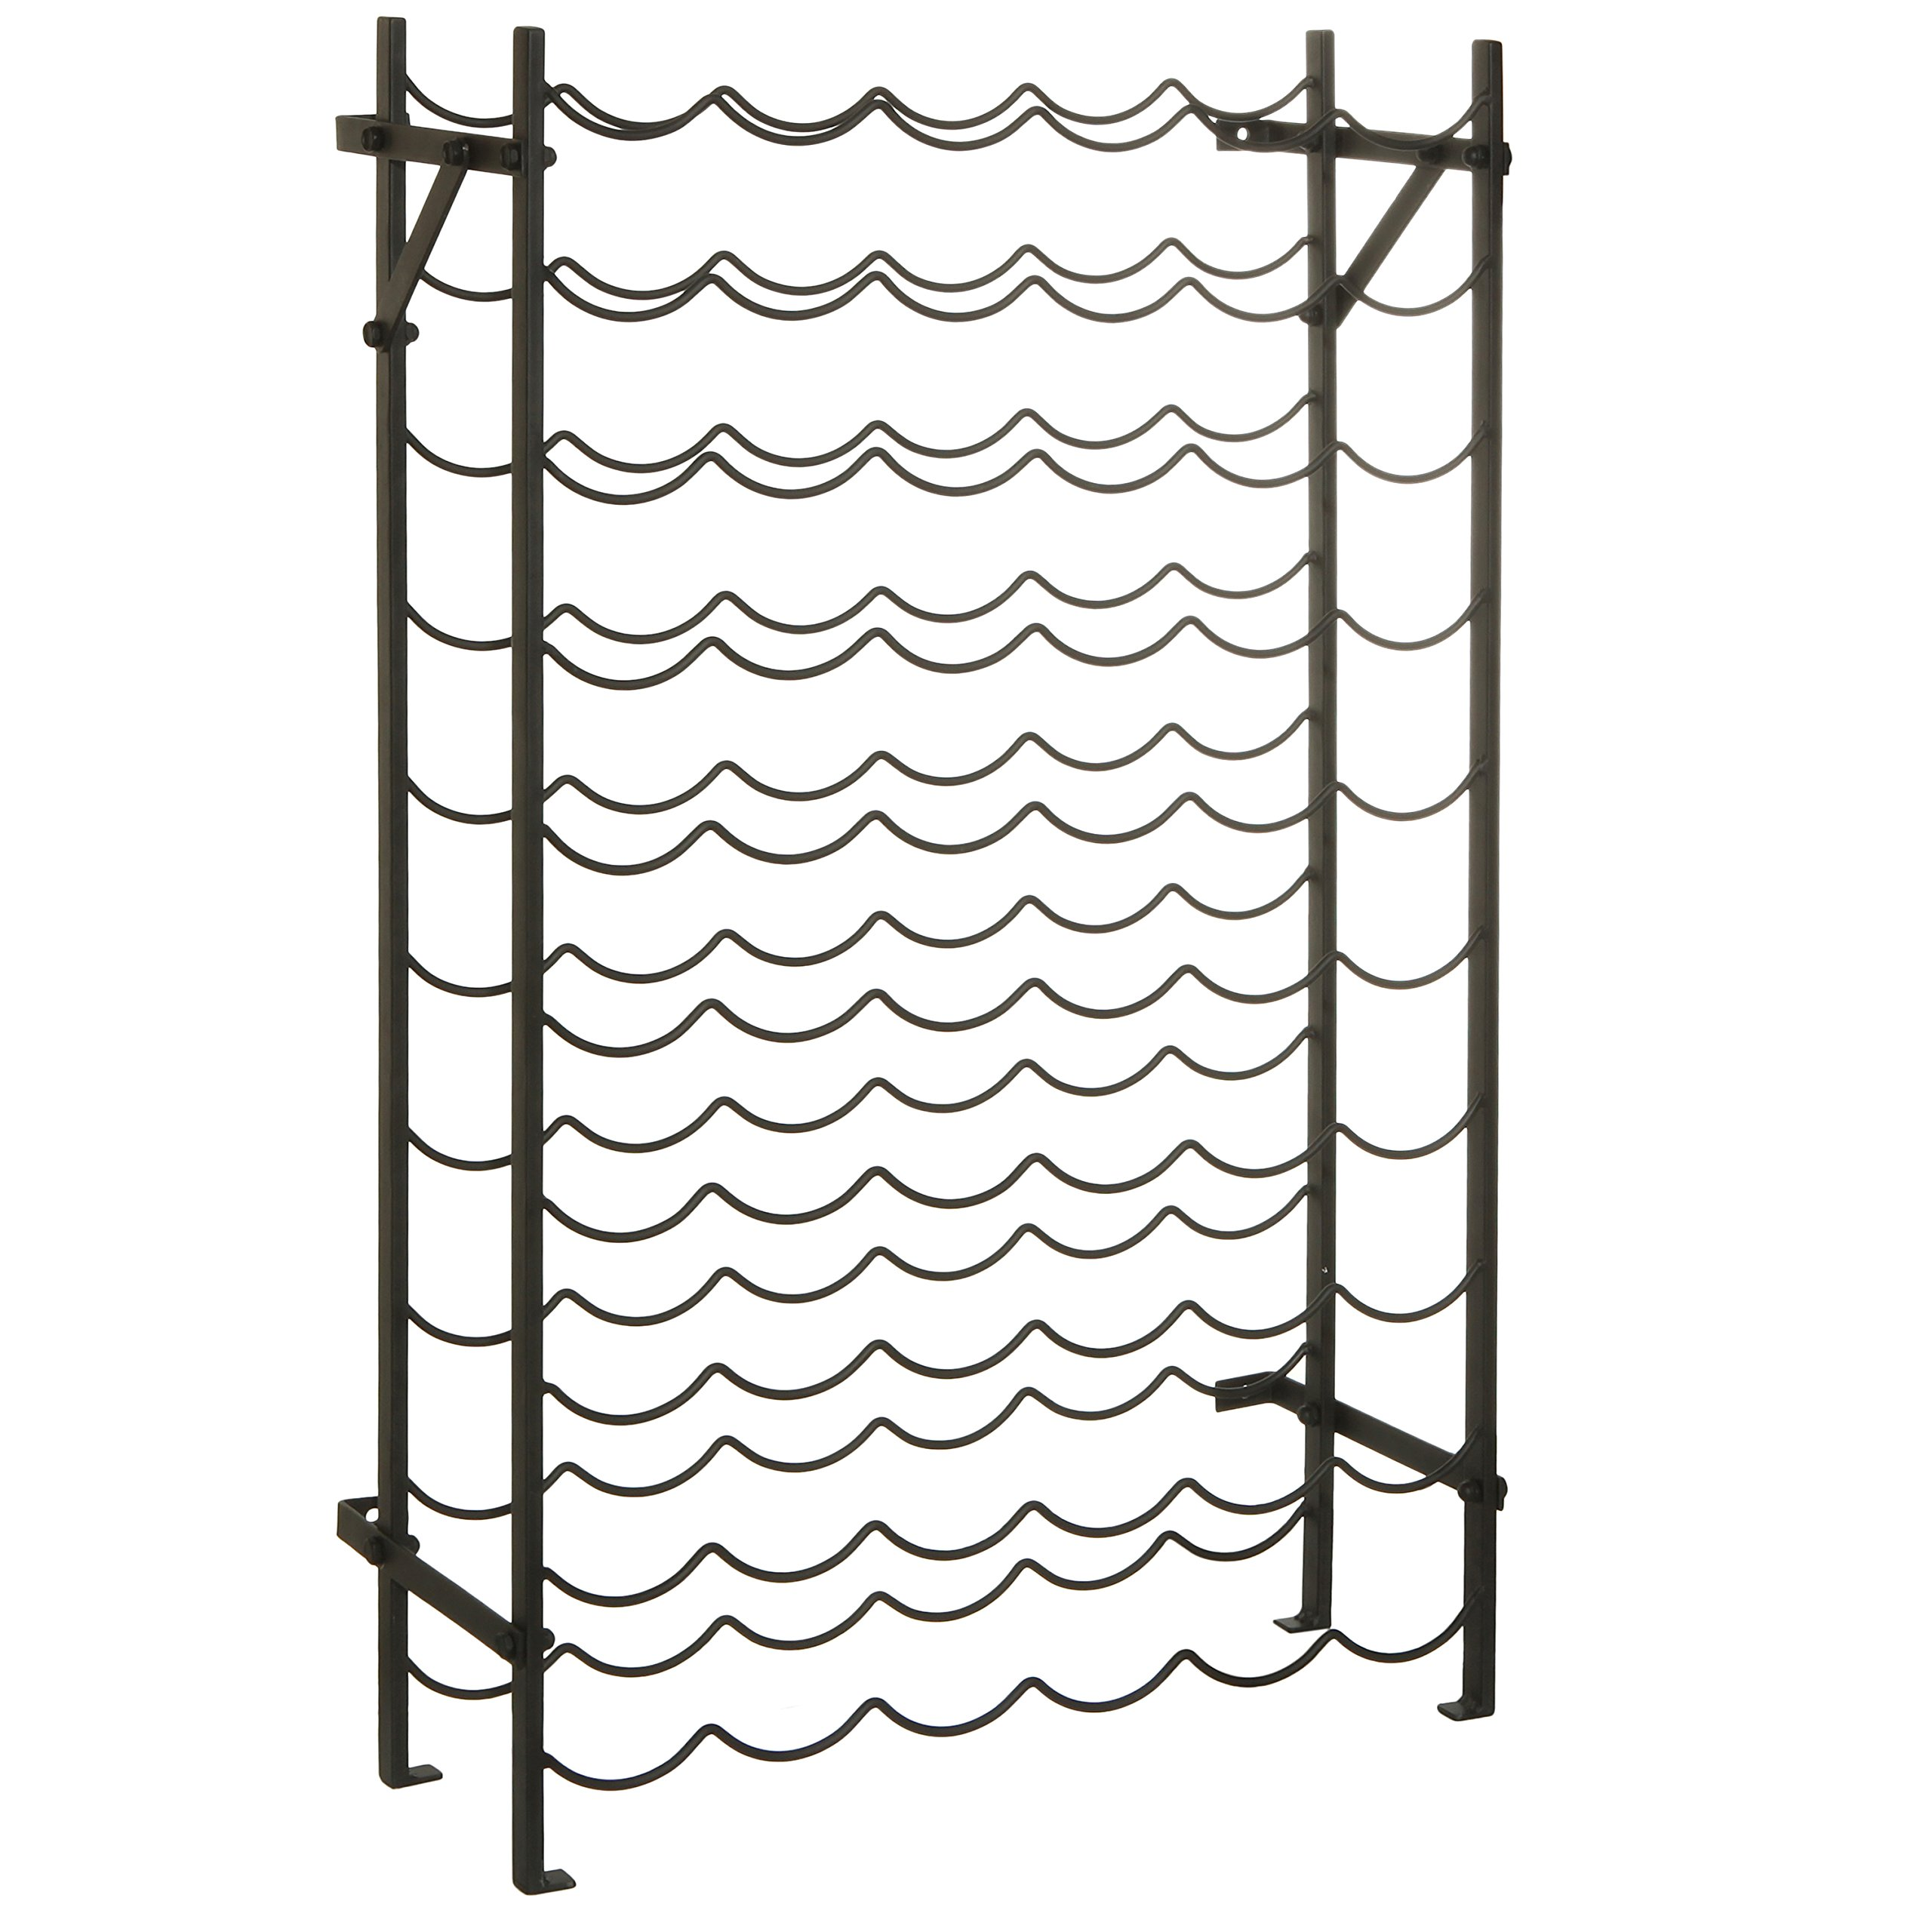 Modern Black Metal 60 Bottle Wine Cellar Organizer Rack/Wall Mounted Wine Collection Display Stand by MyGift (Image #3)